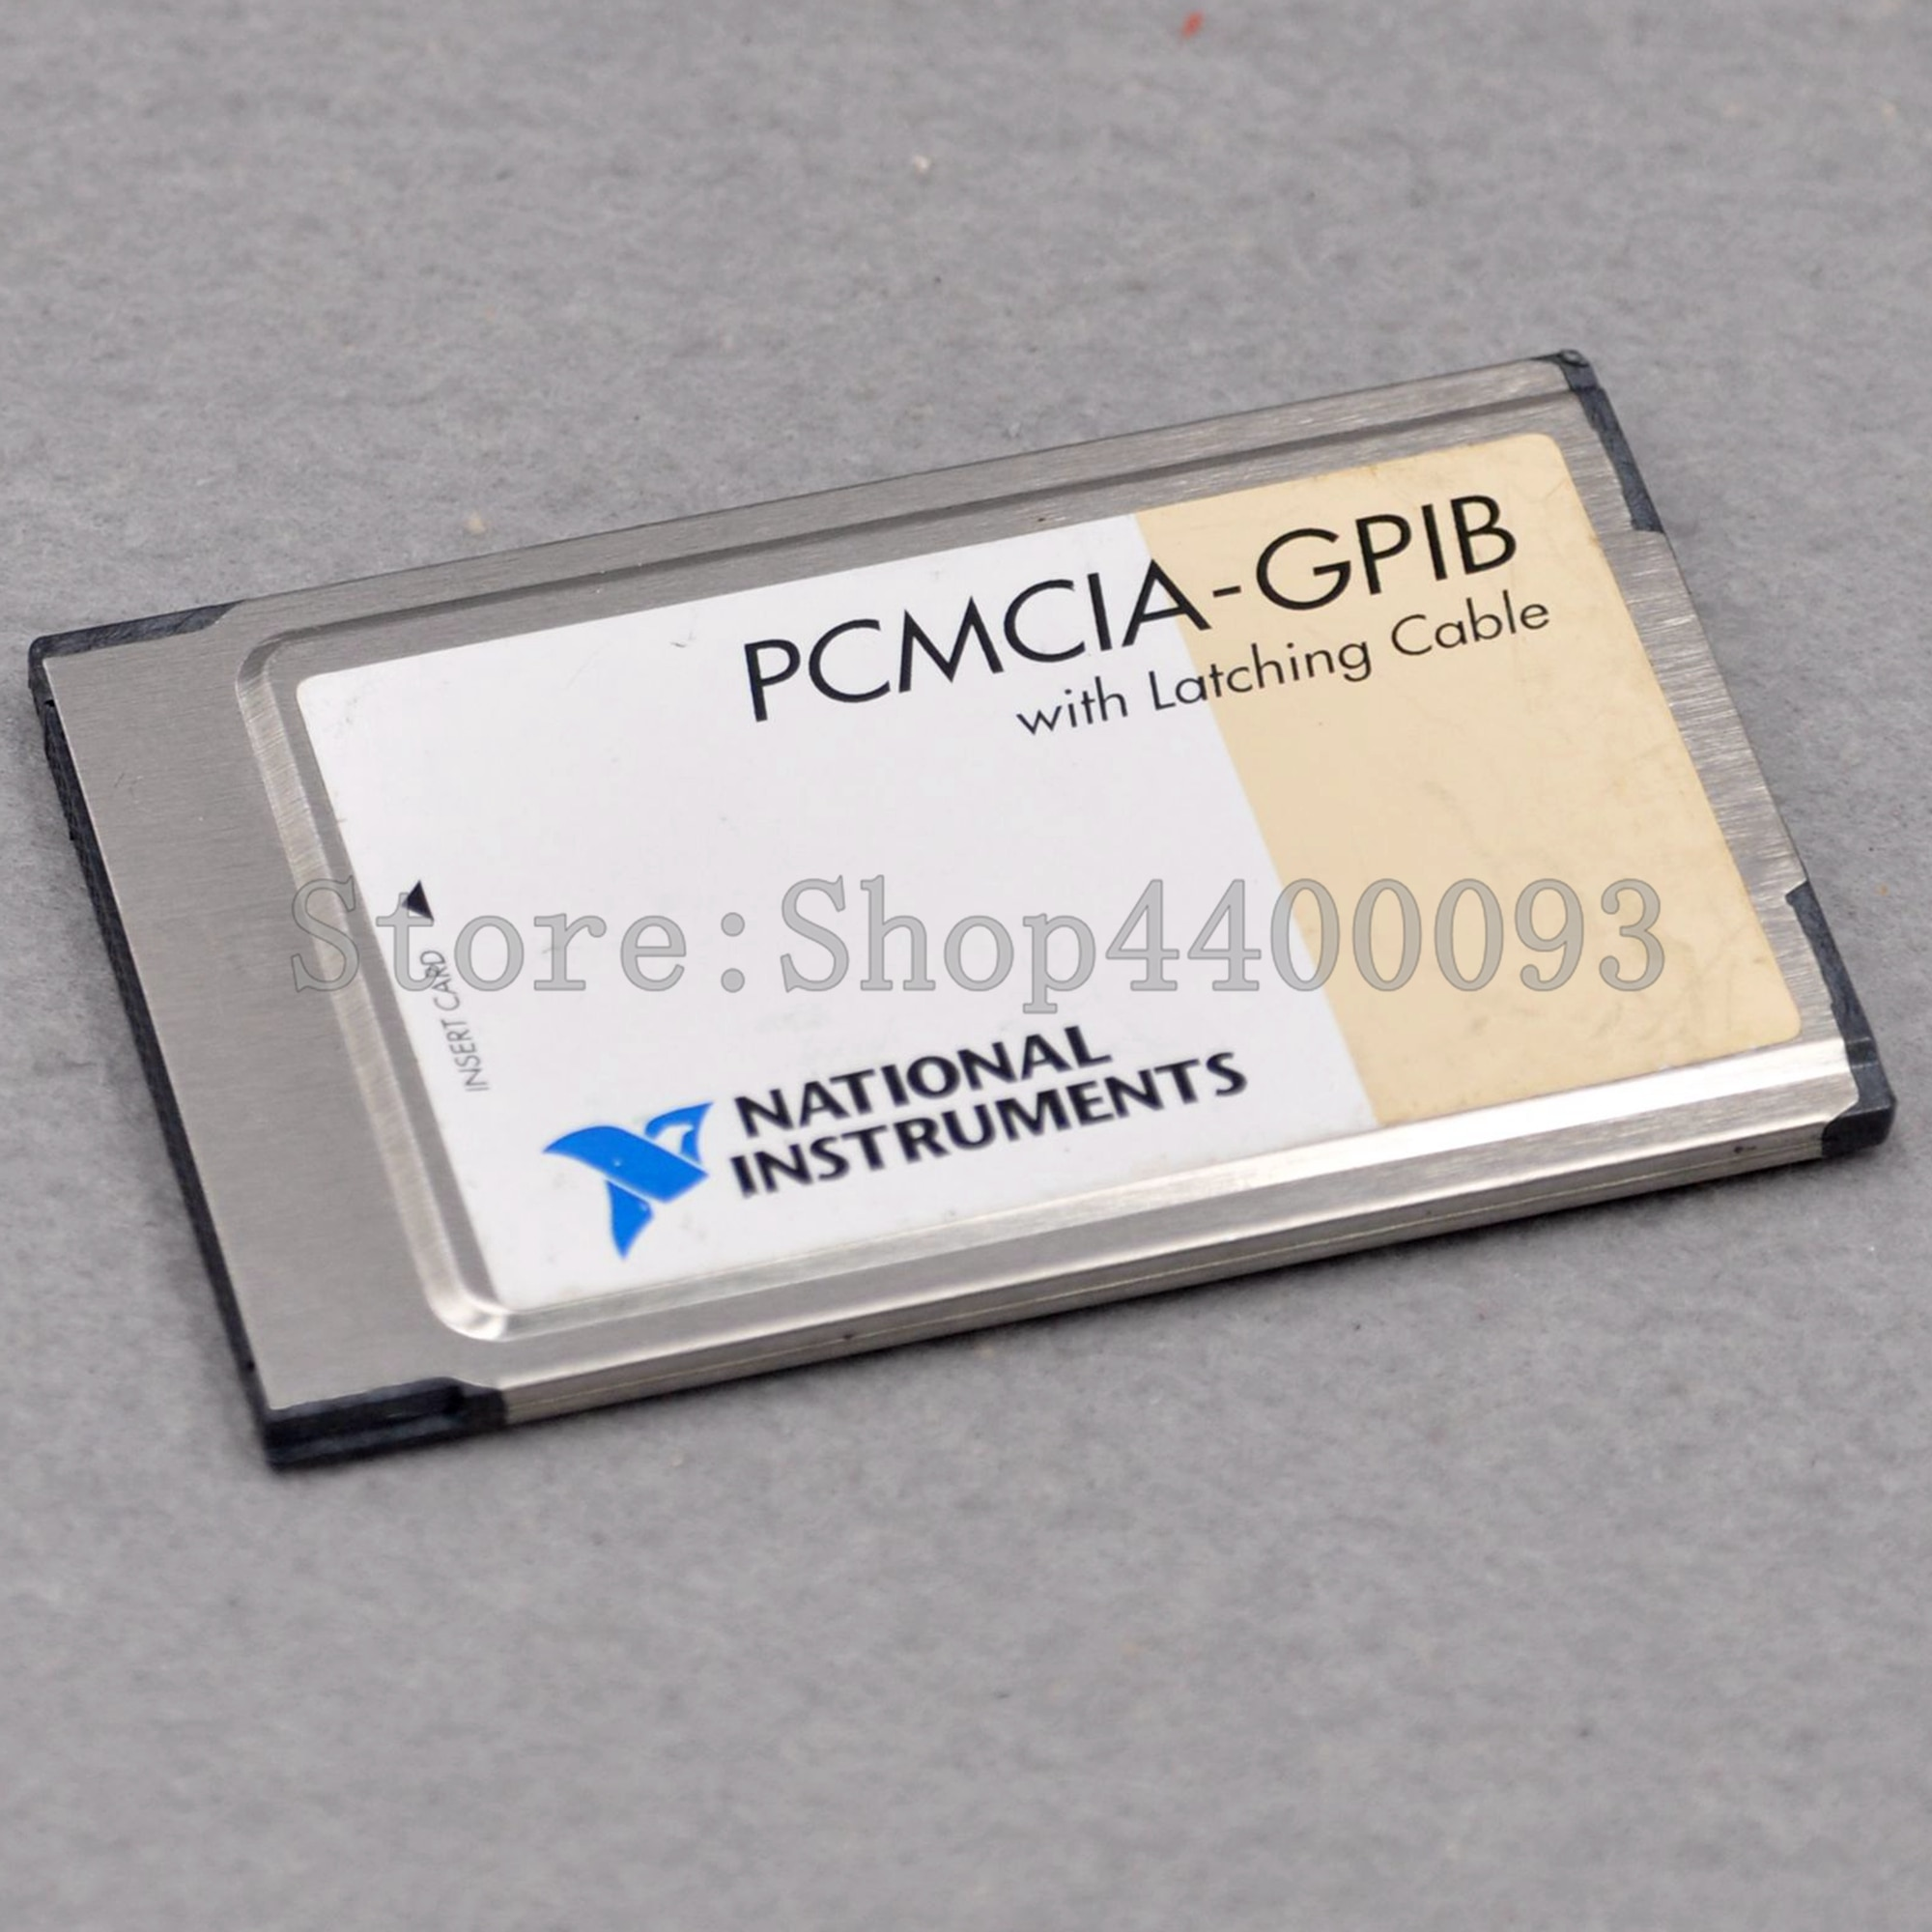 NATIONAL INSTRUMENTS PCMCIA-GPIB 186736C-01 110mA 5V IEEE488card data acquisition card